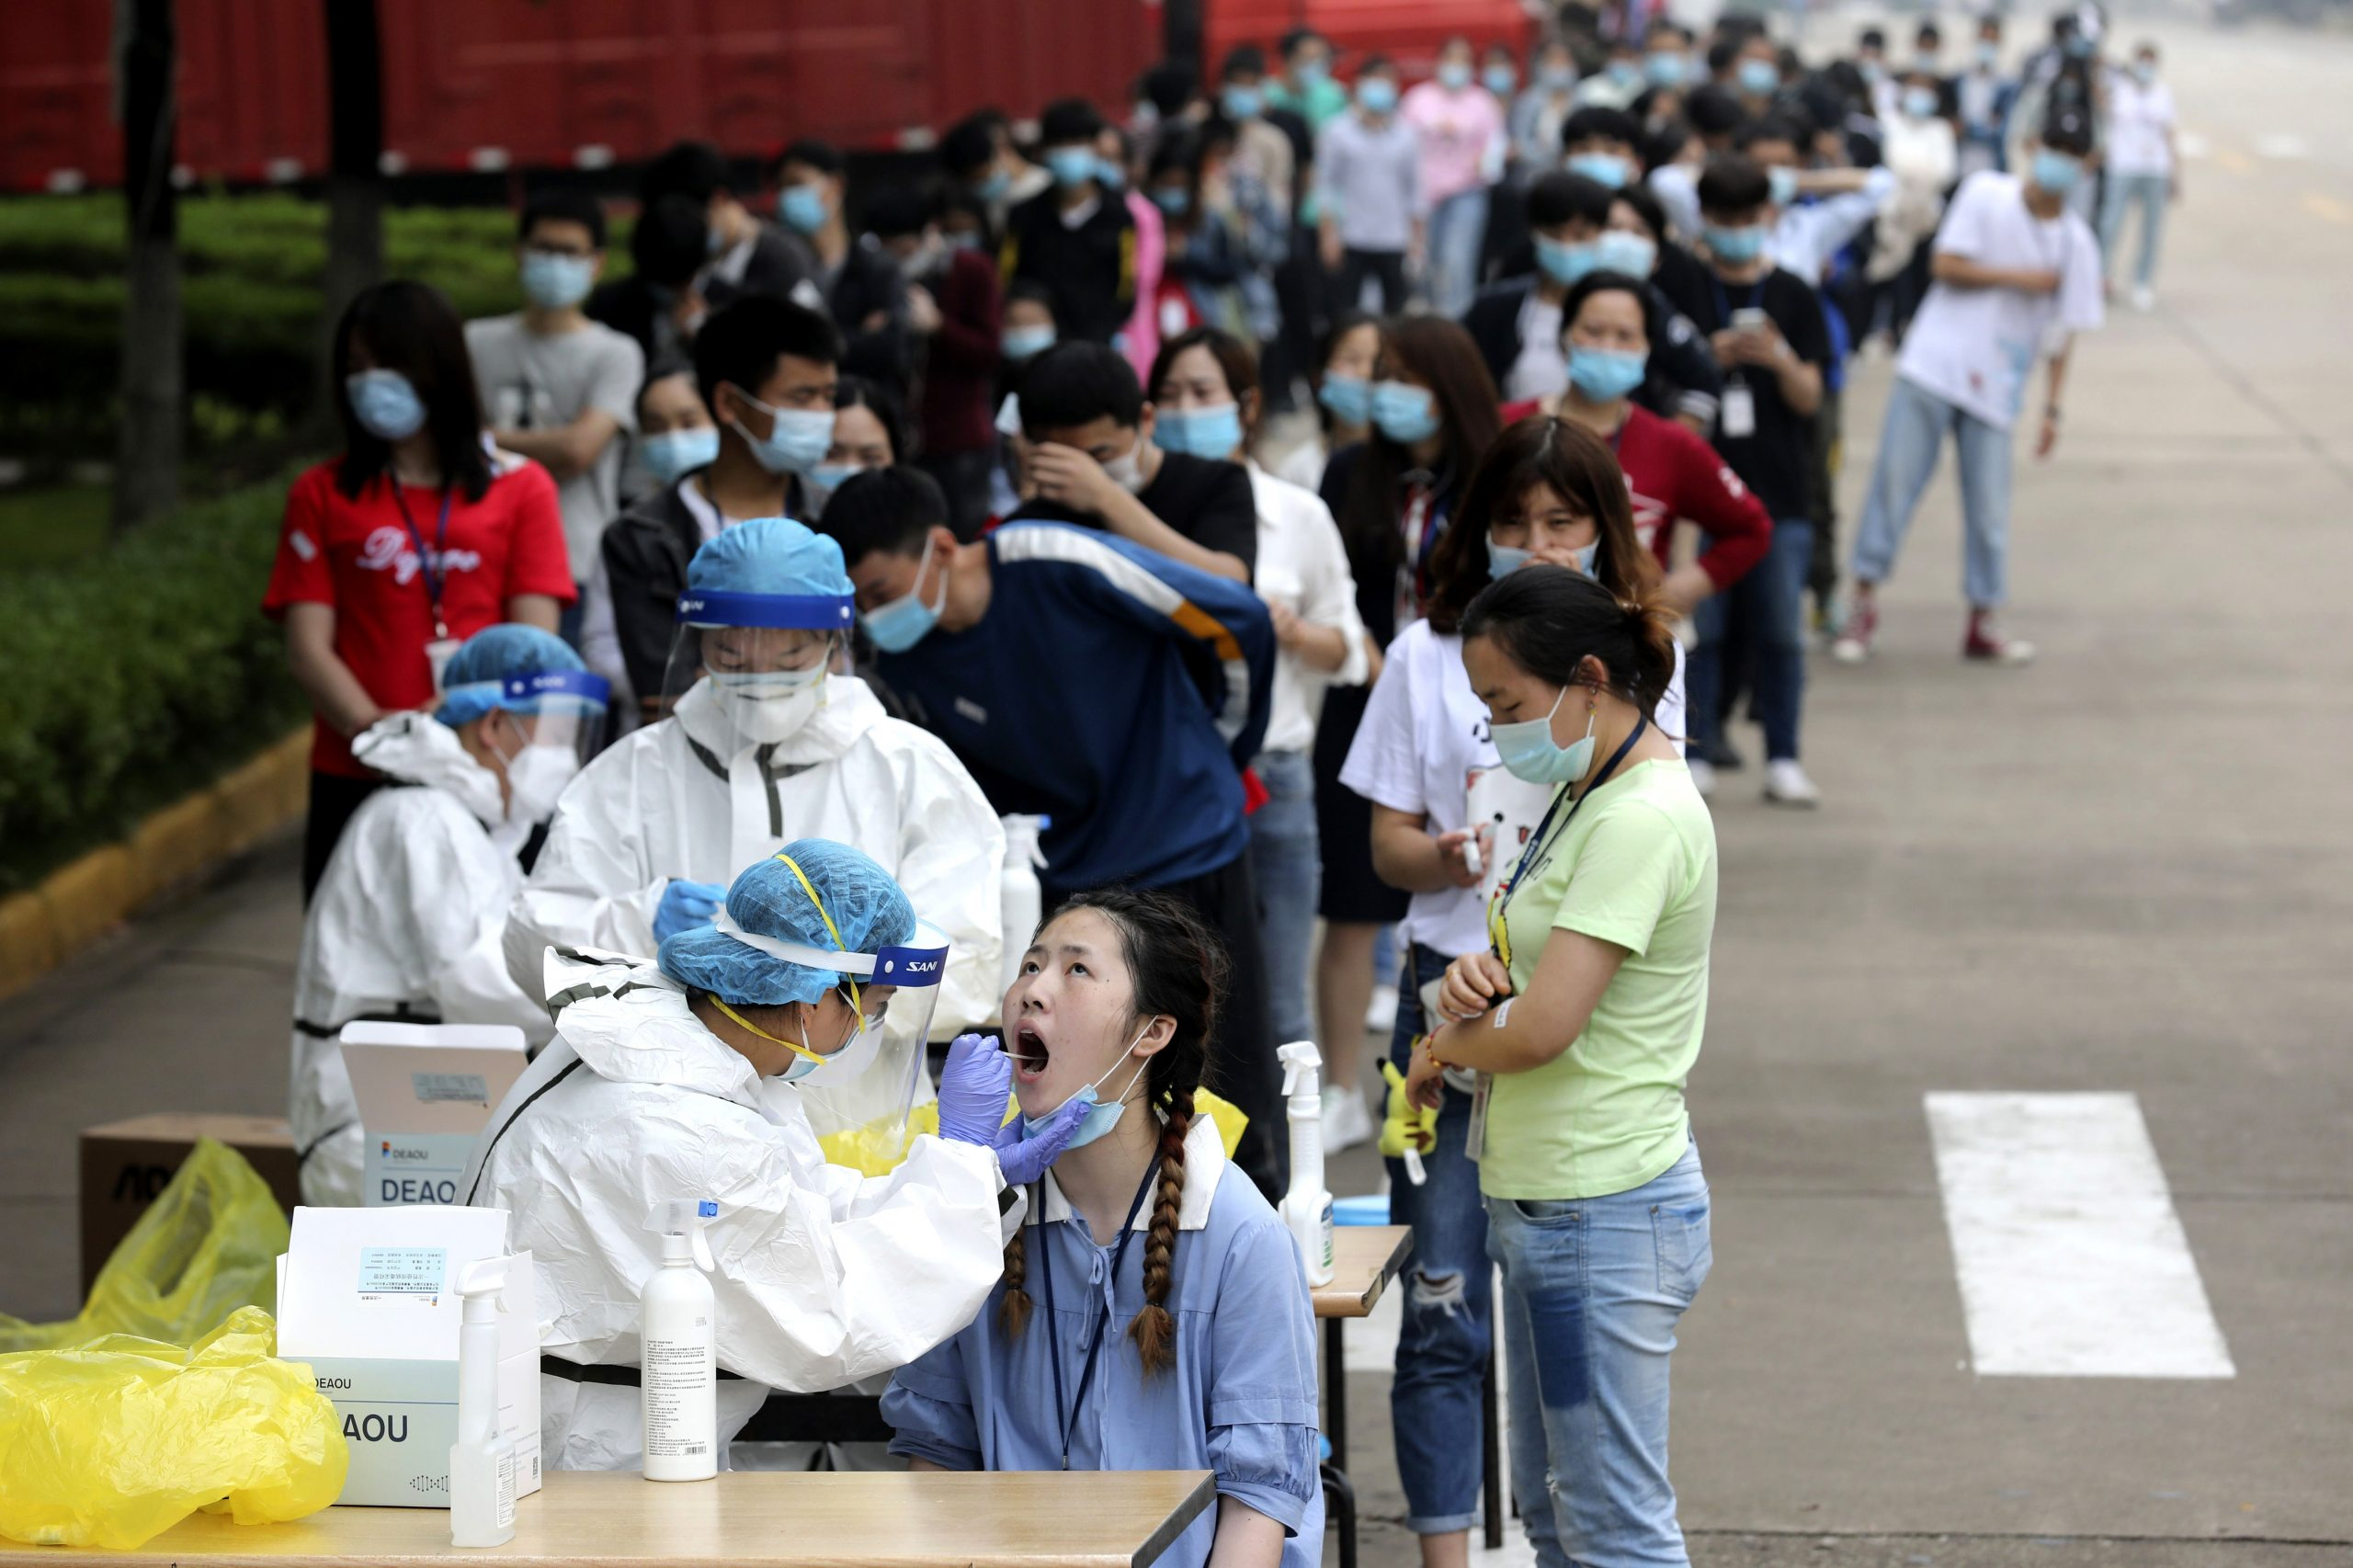 The Chinese CDC study found that the Coronavirus infection in Wuhan may be 10 times higher than reported